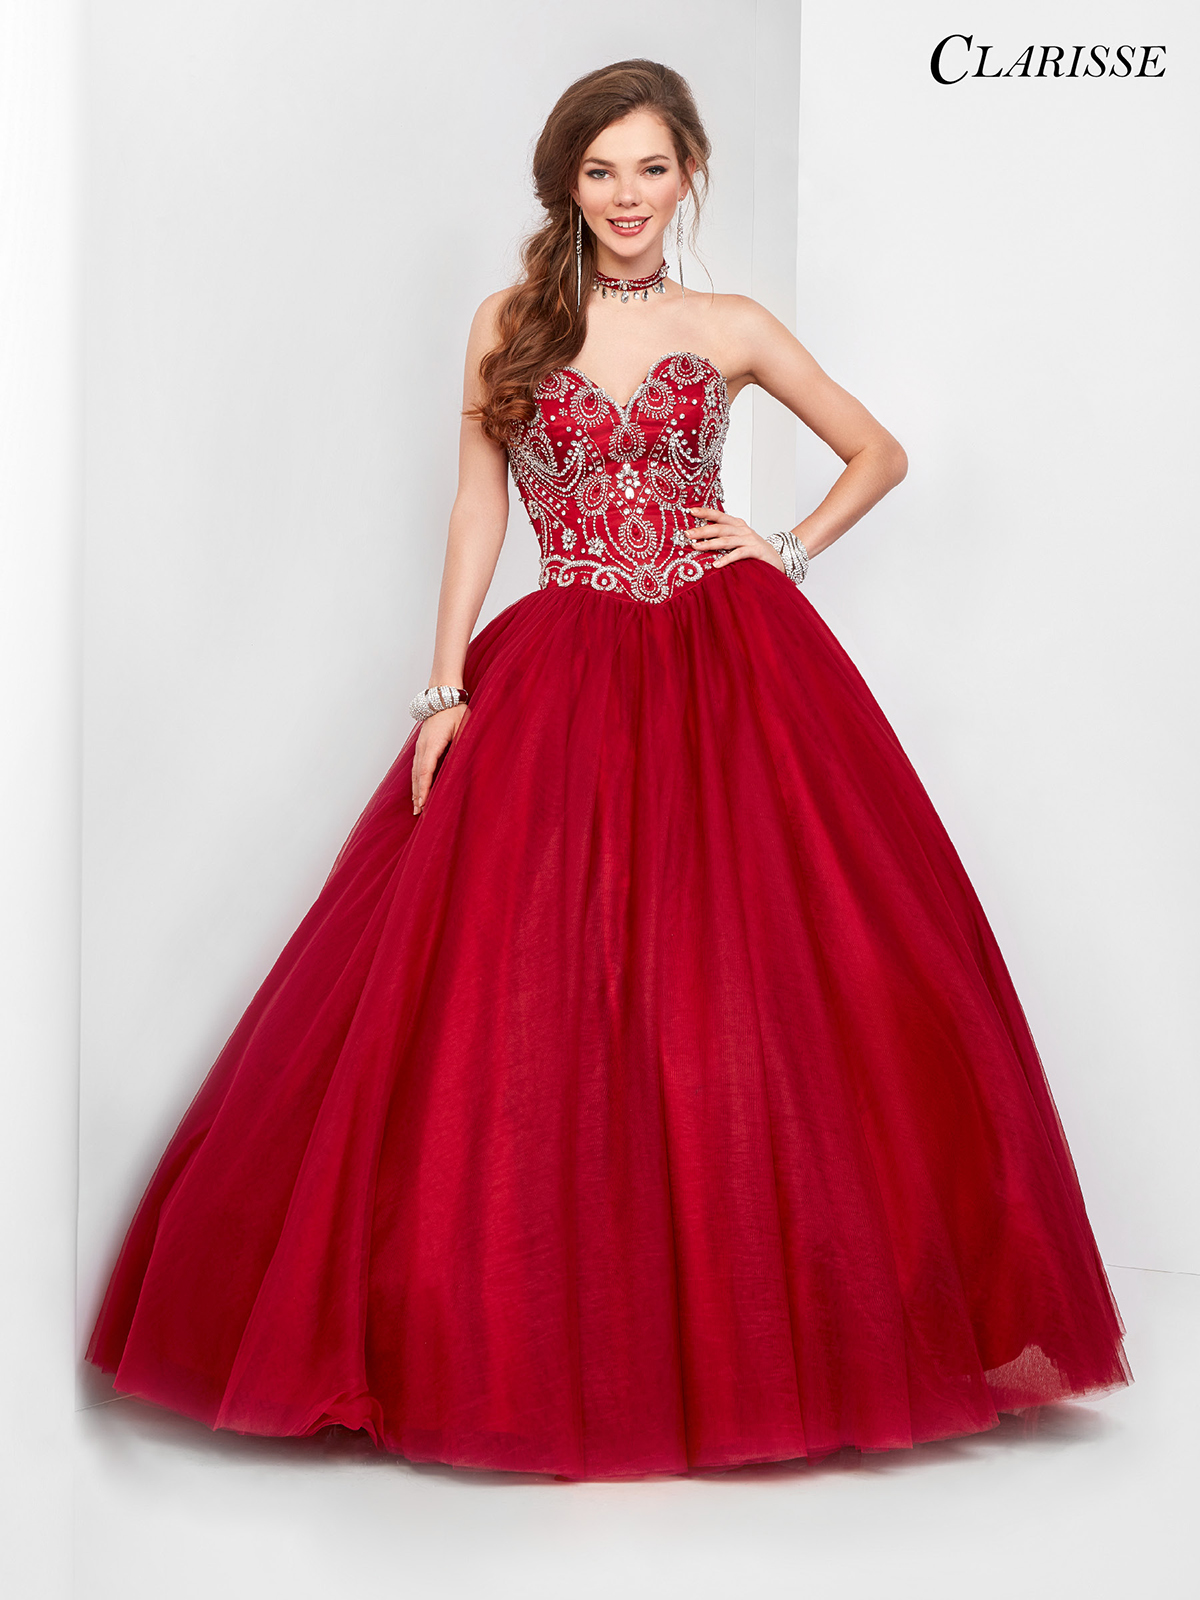 2018 Prom Dress Clarisse 3550 | Promgirl.net